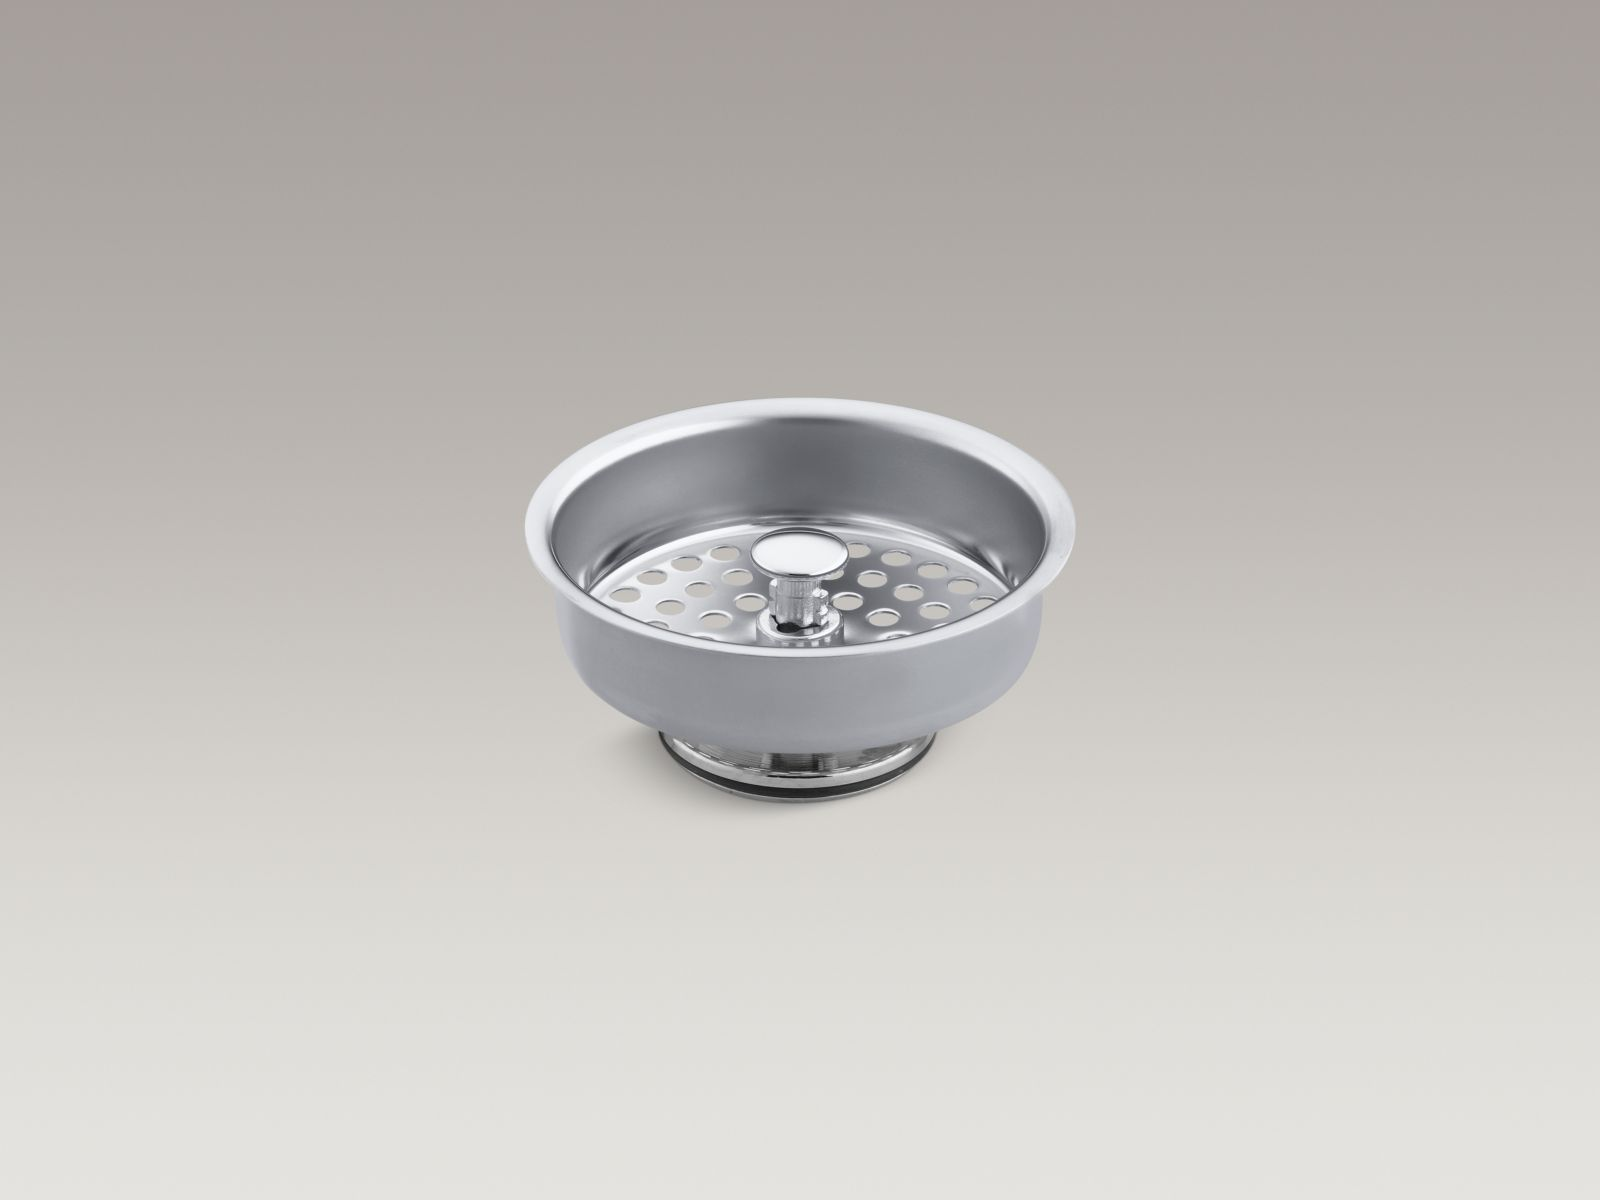 Kohler K-8803-CP Duostrainer Manual Kitchen Sink Basket Strainer Polished Chrome